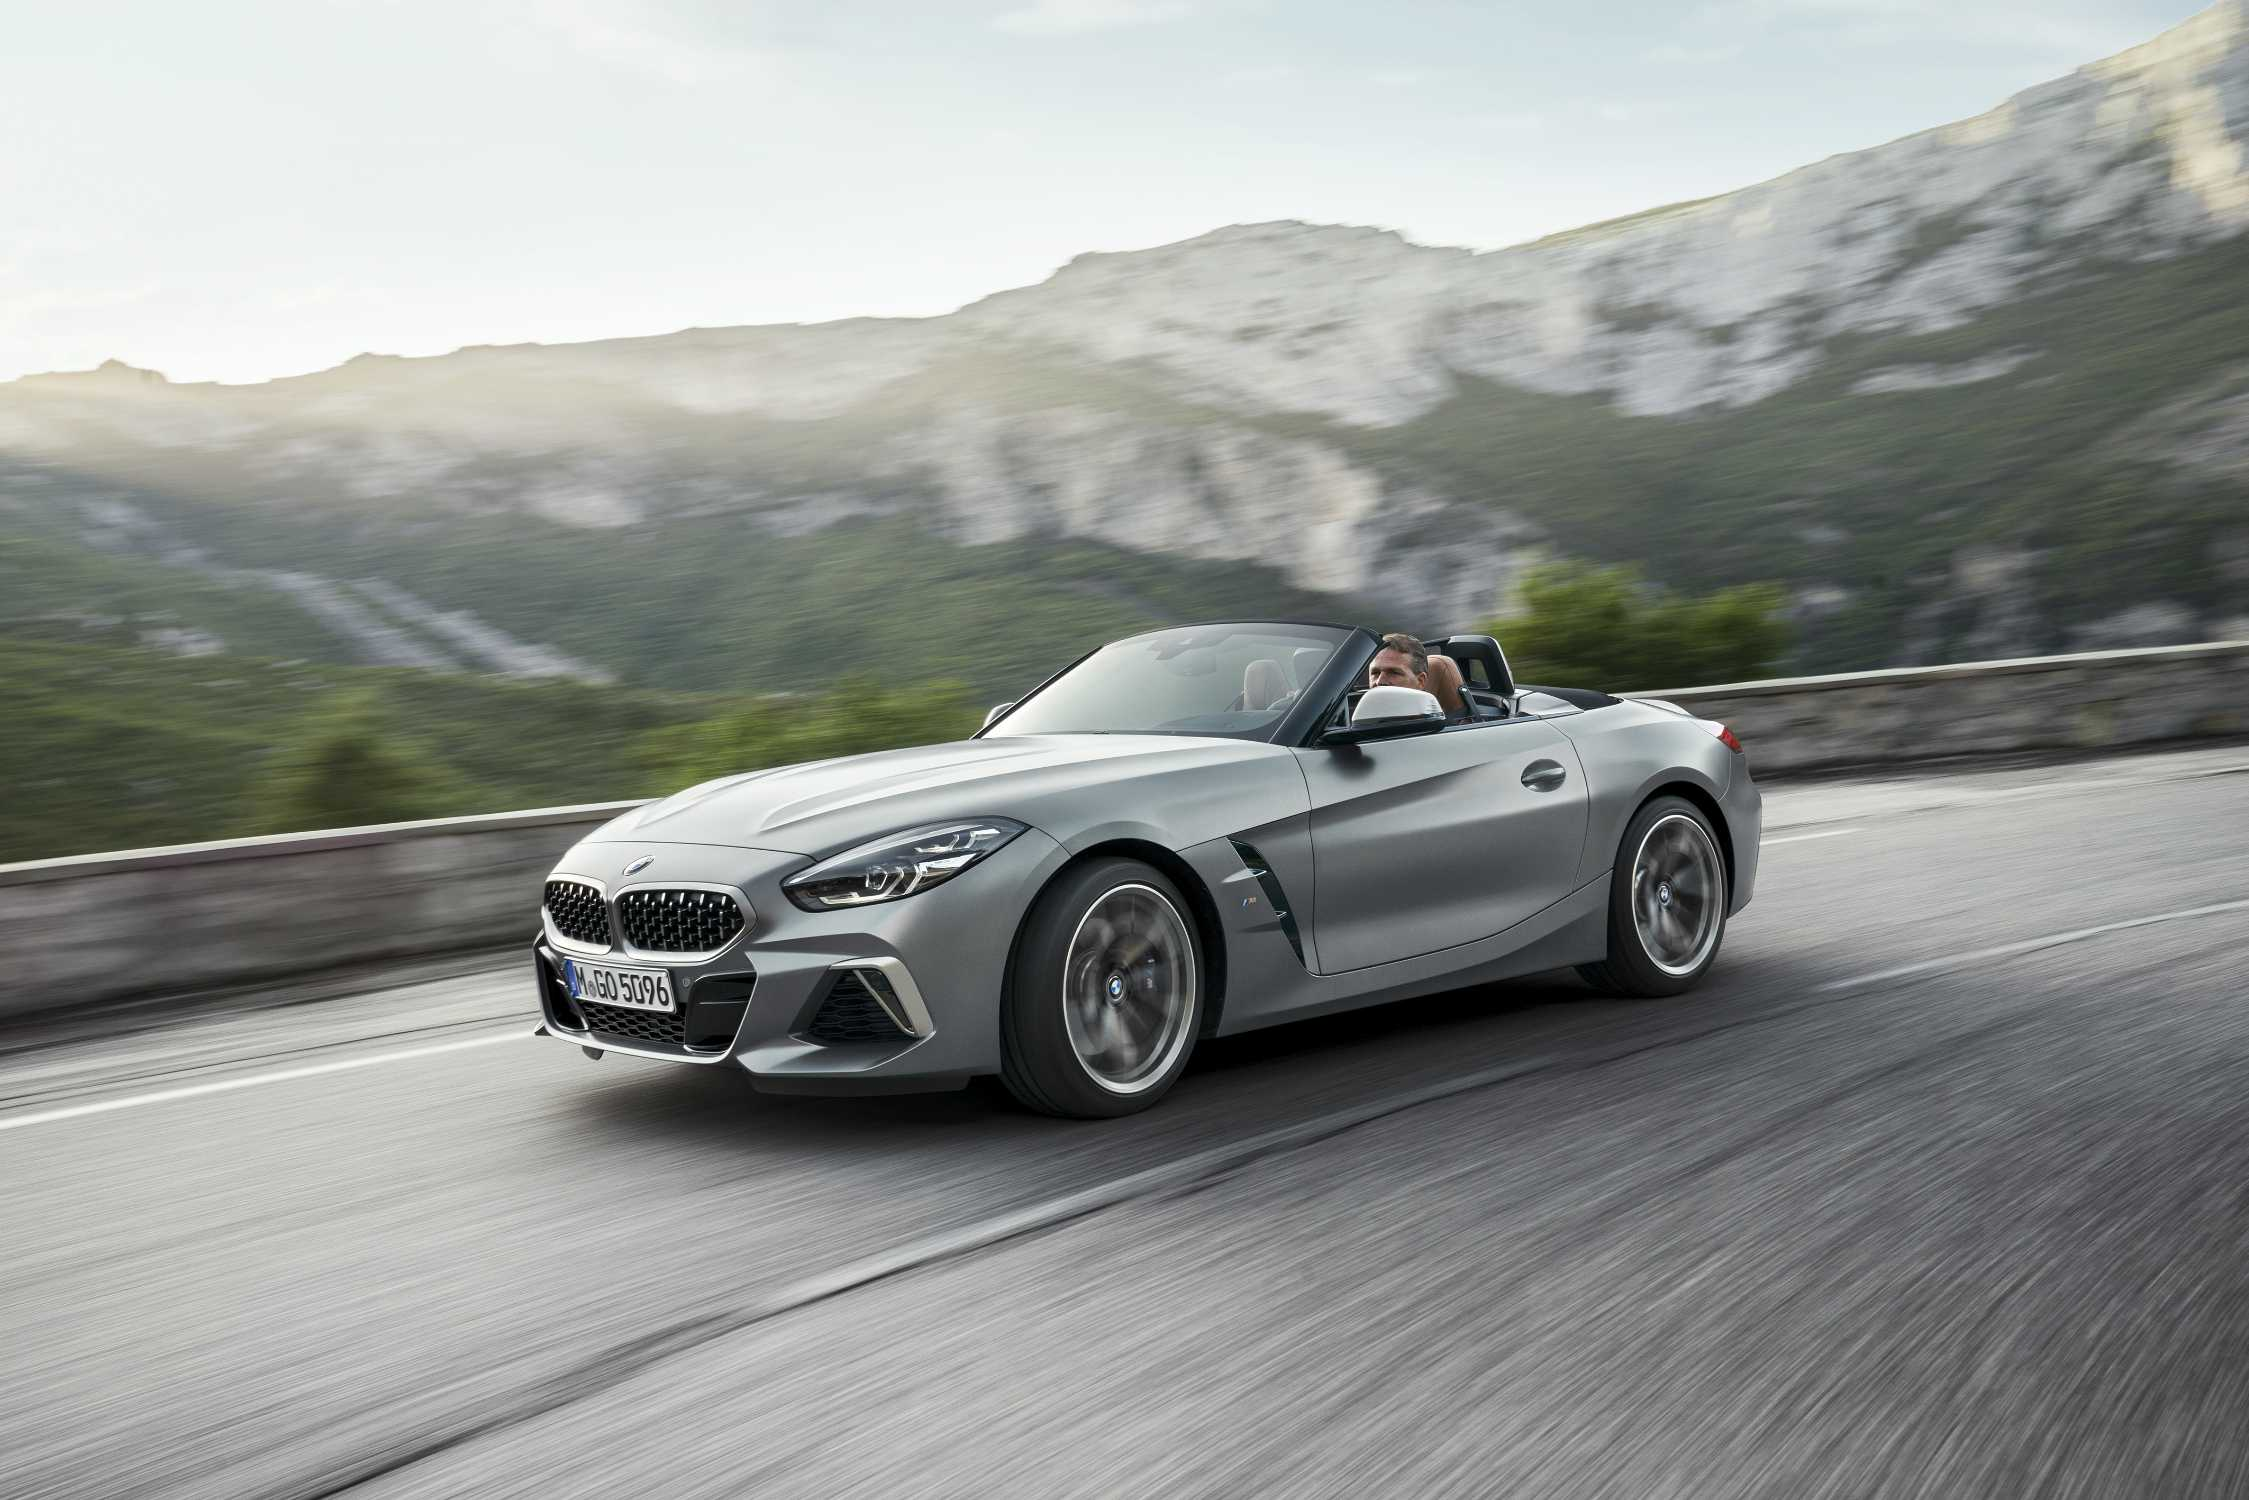 18 New 2020 BMW Z4 Roadster Speed Test for 2020 BMW Z4 Roadster